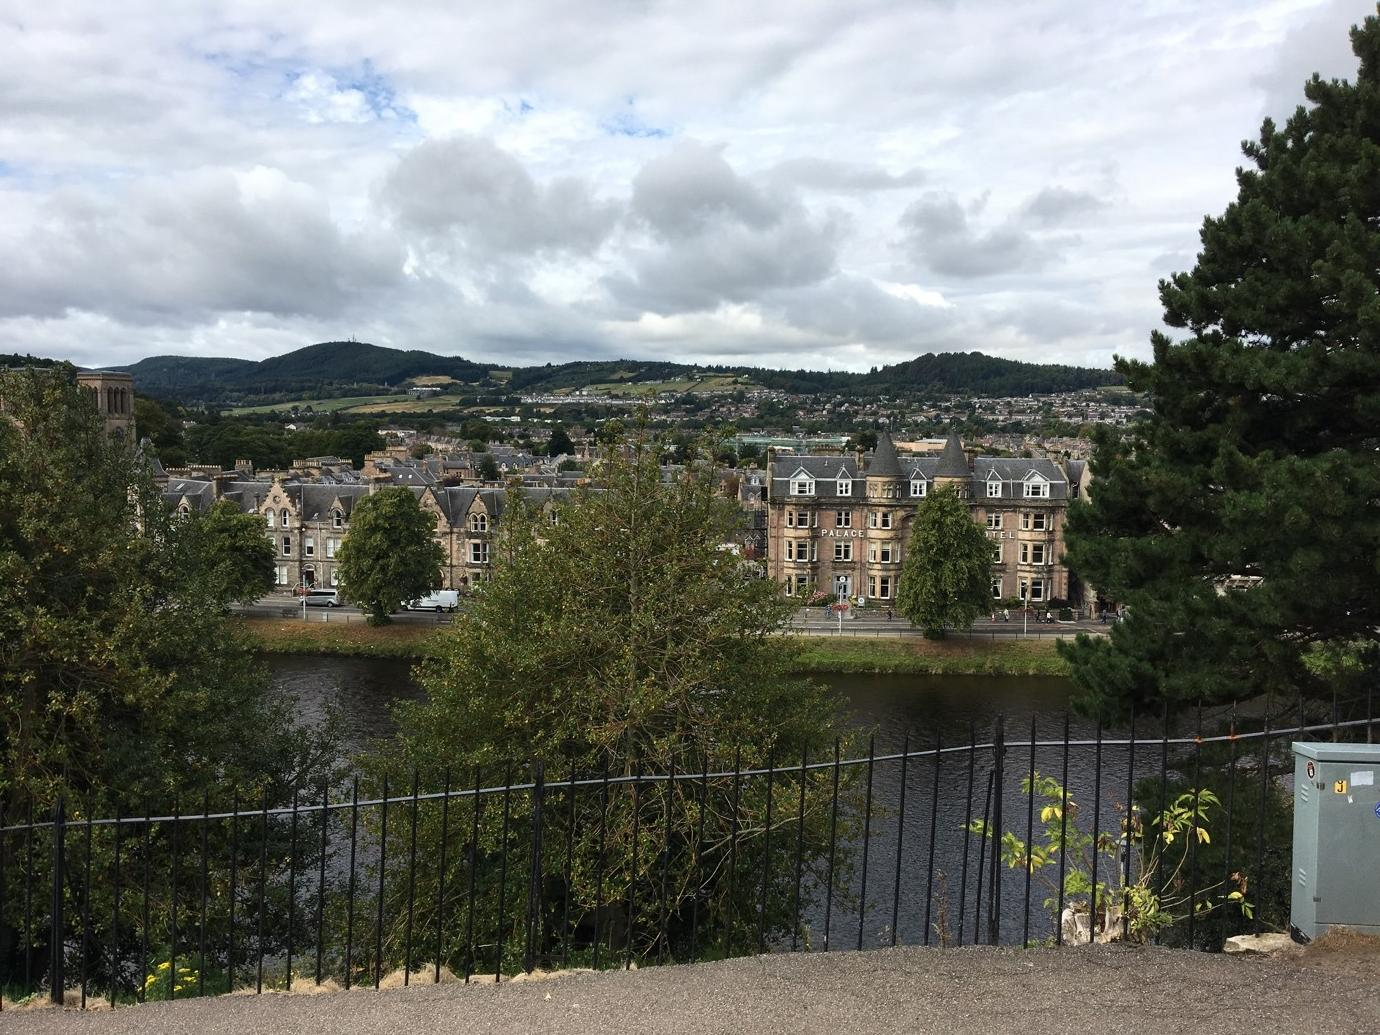 (View from Inverness Castle of the River Ness)